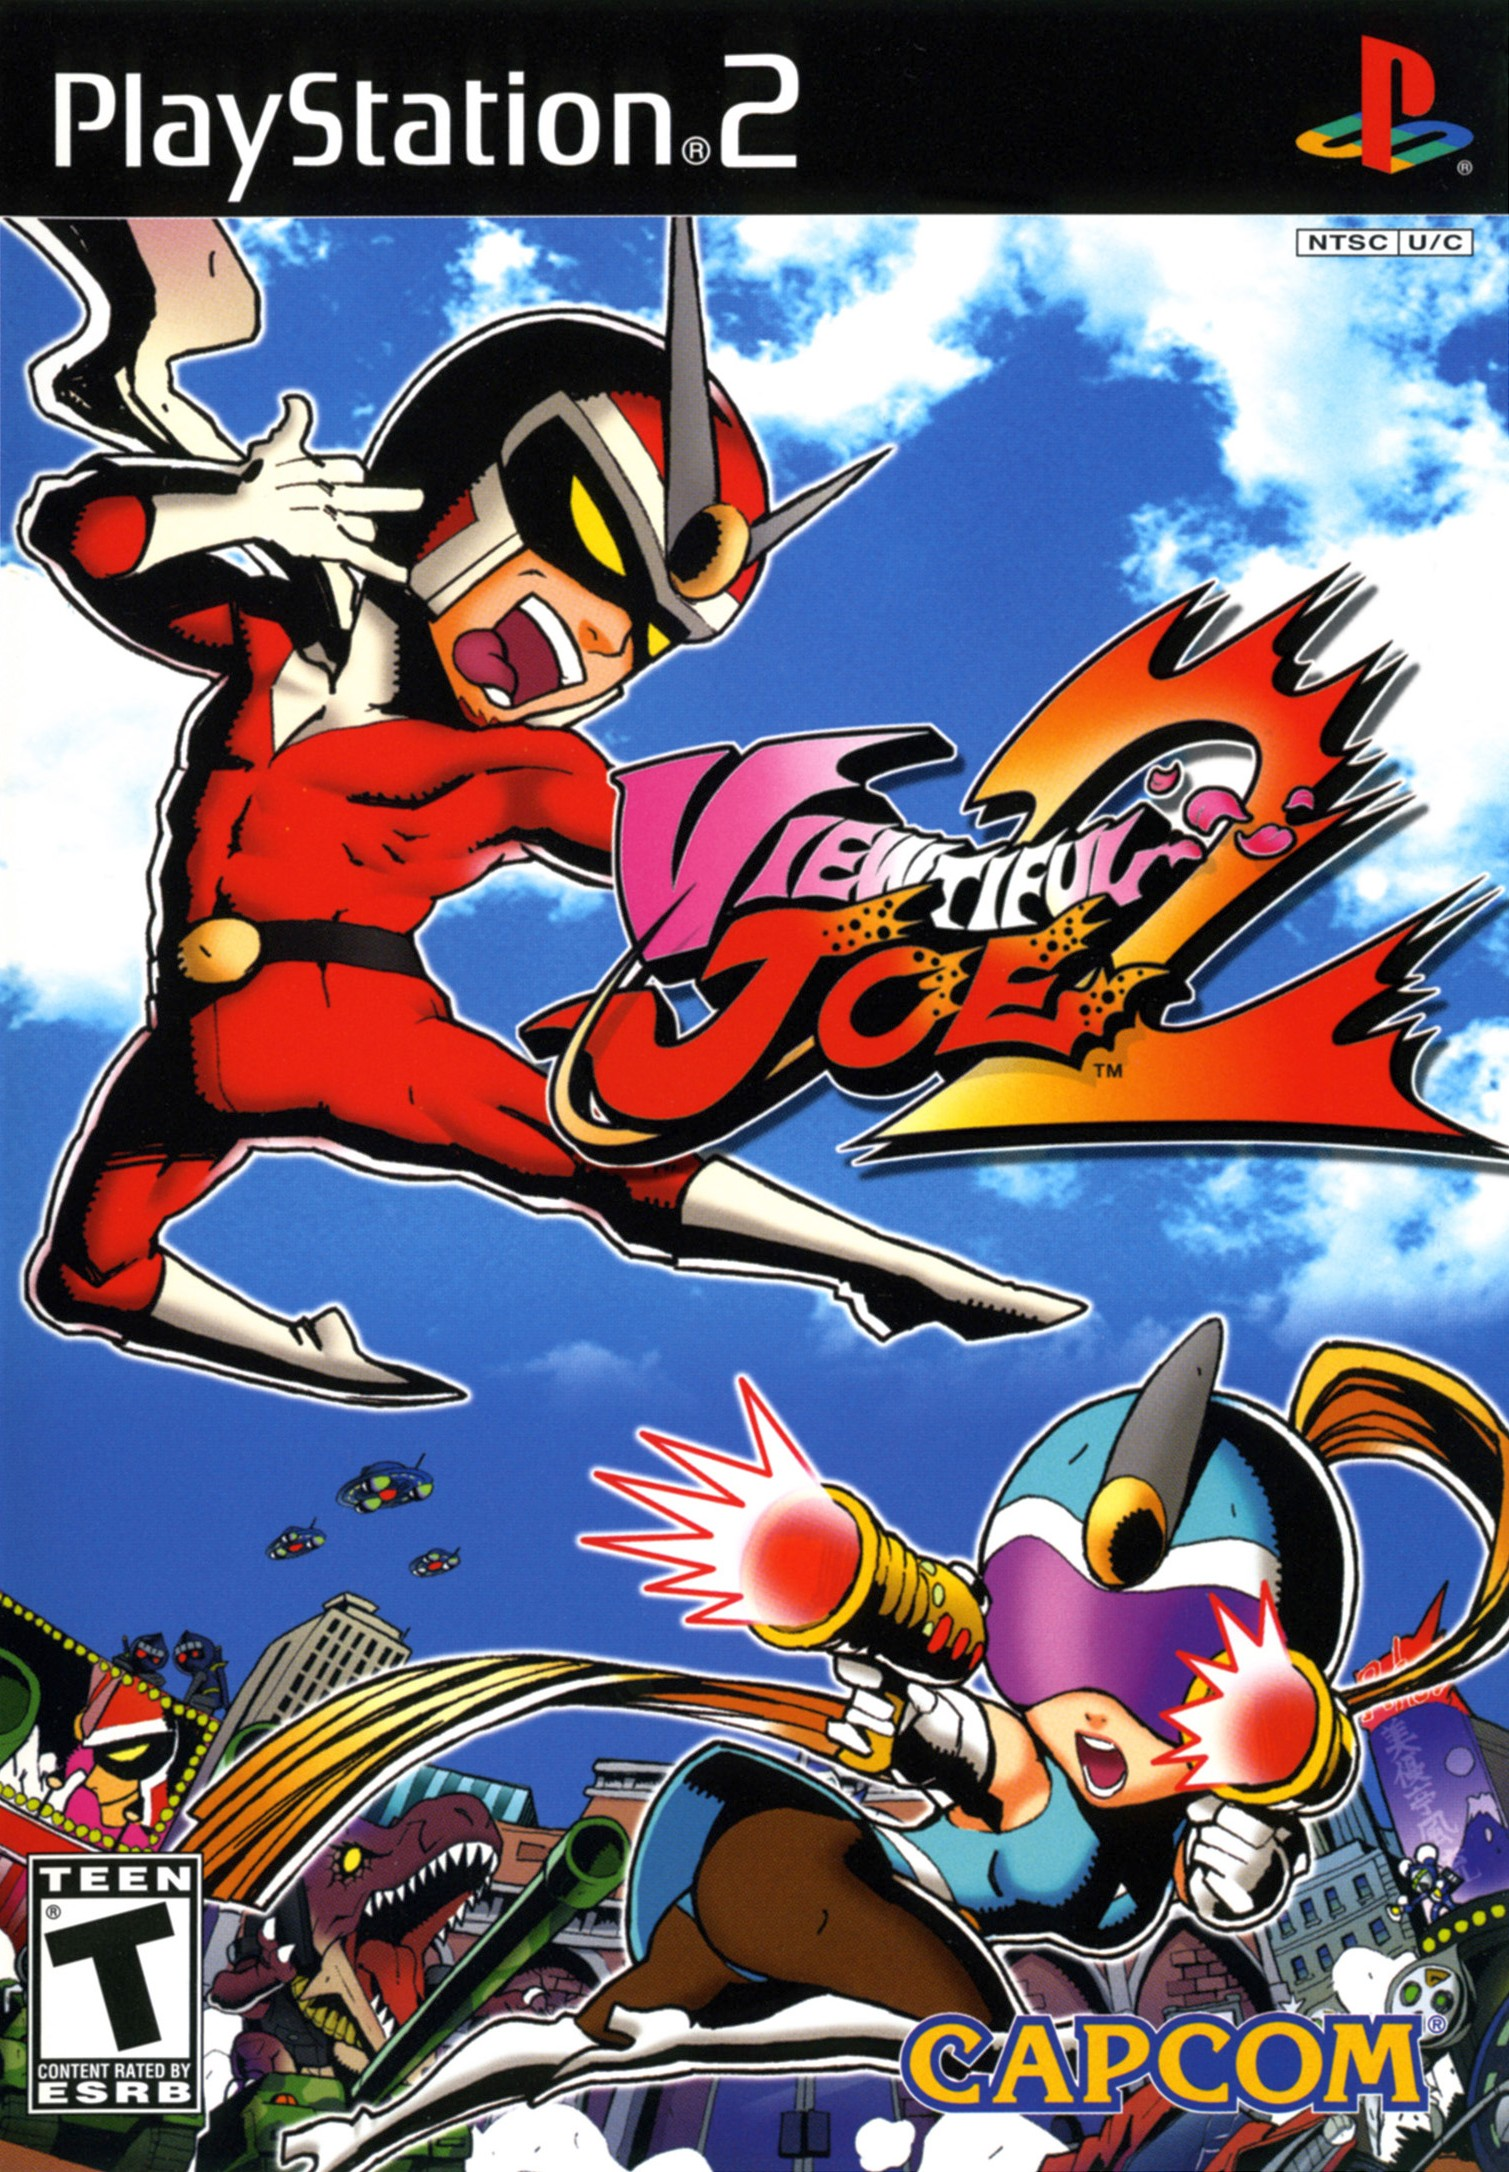 Viewtiful Joe 2/PS2